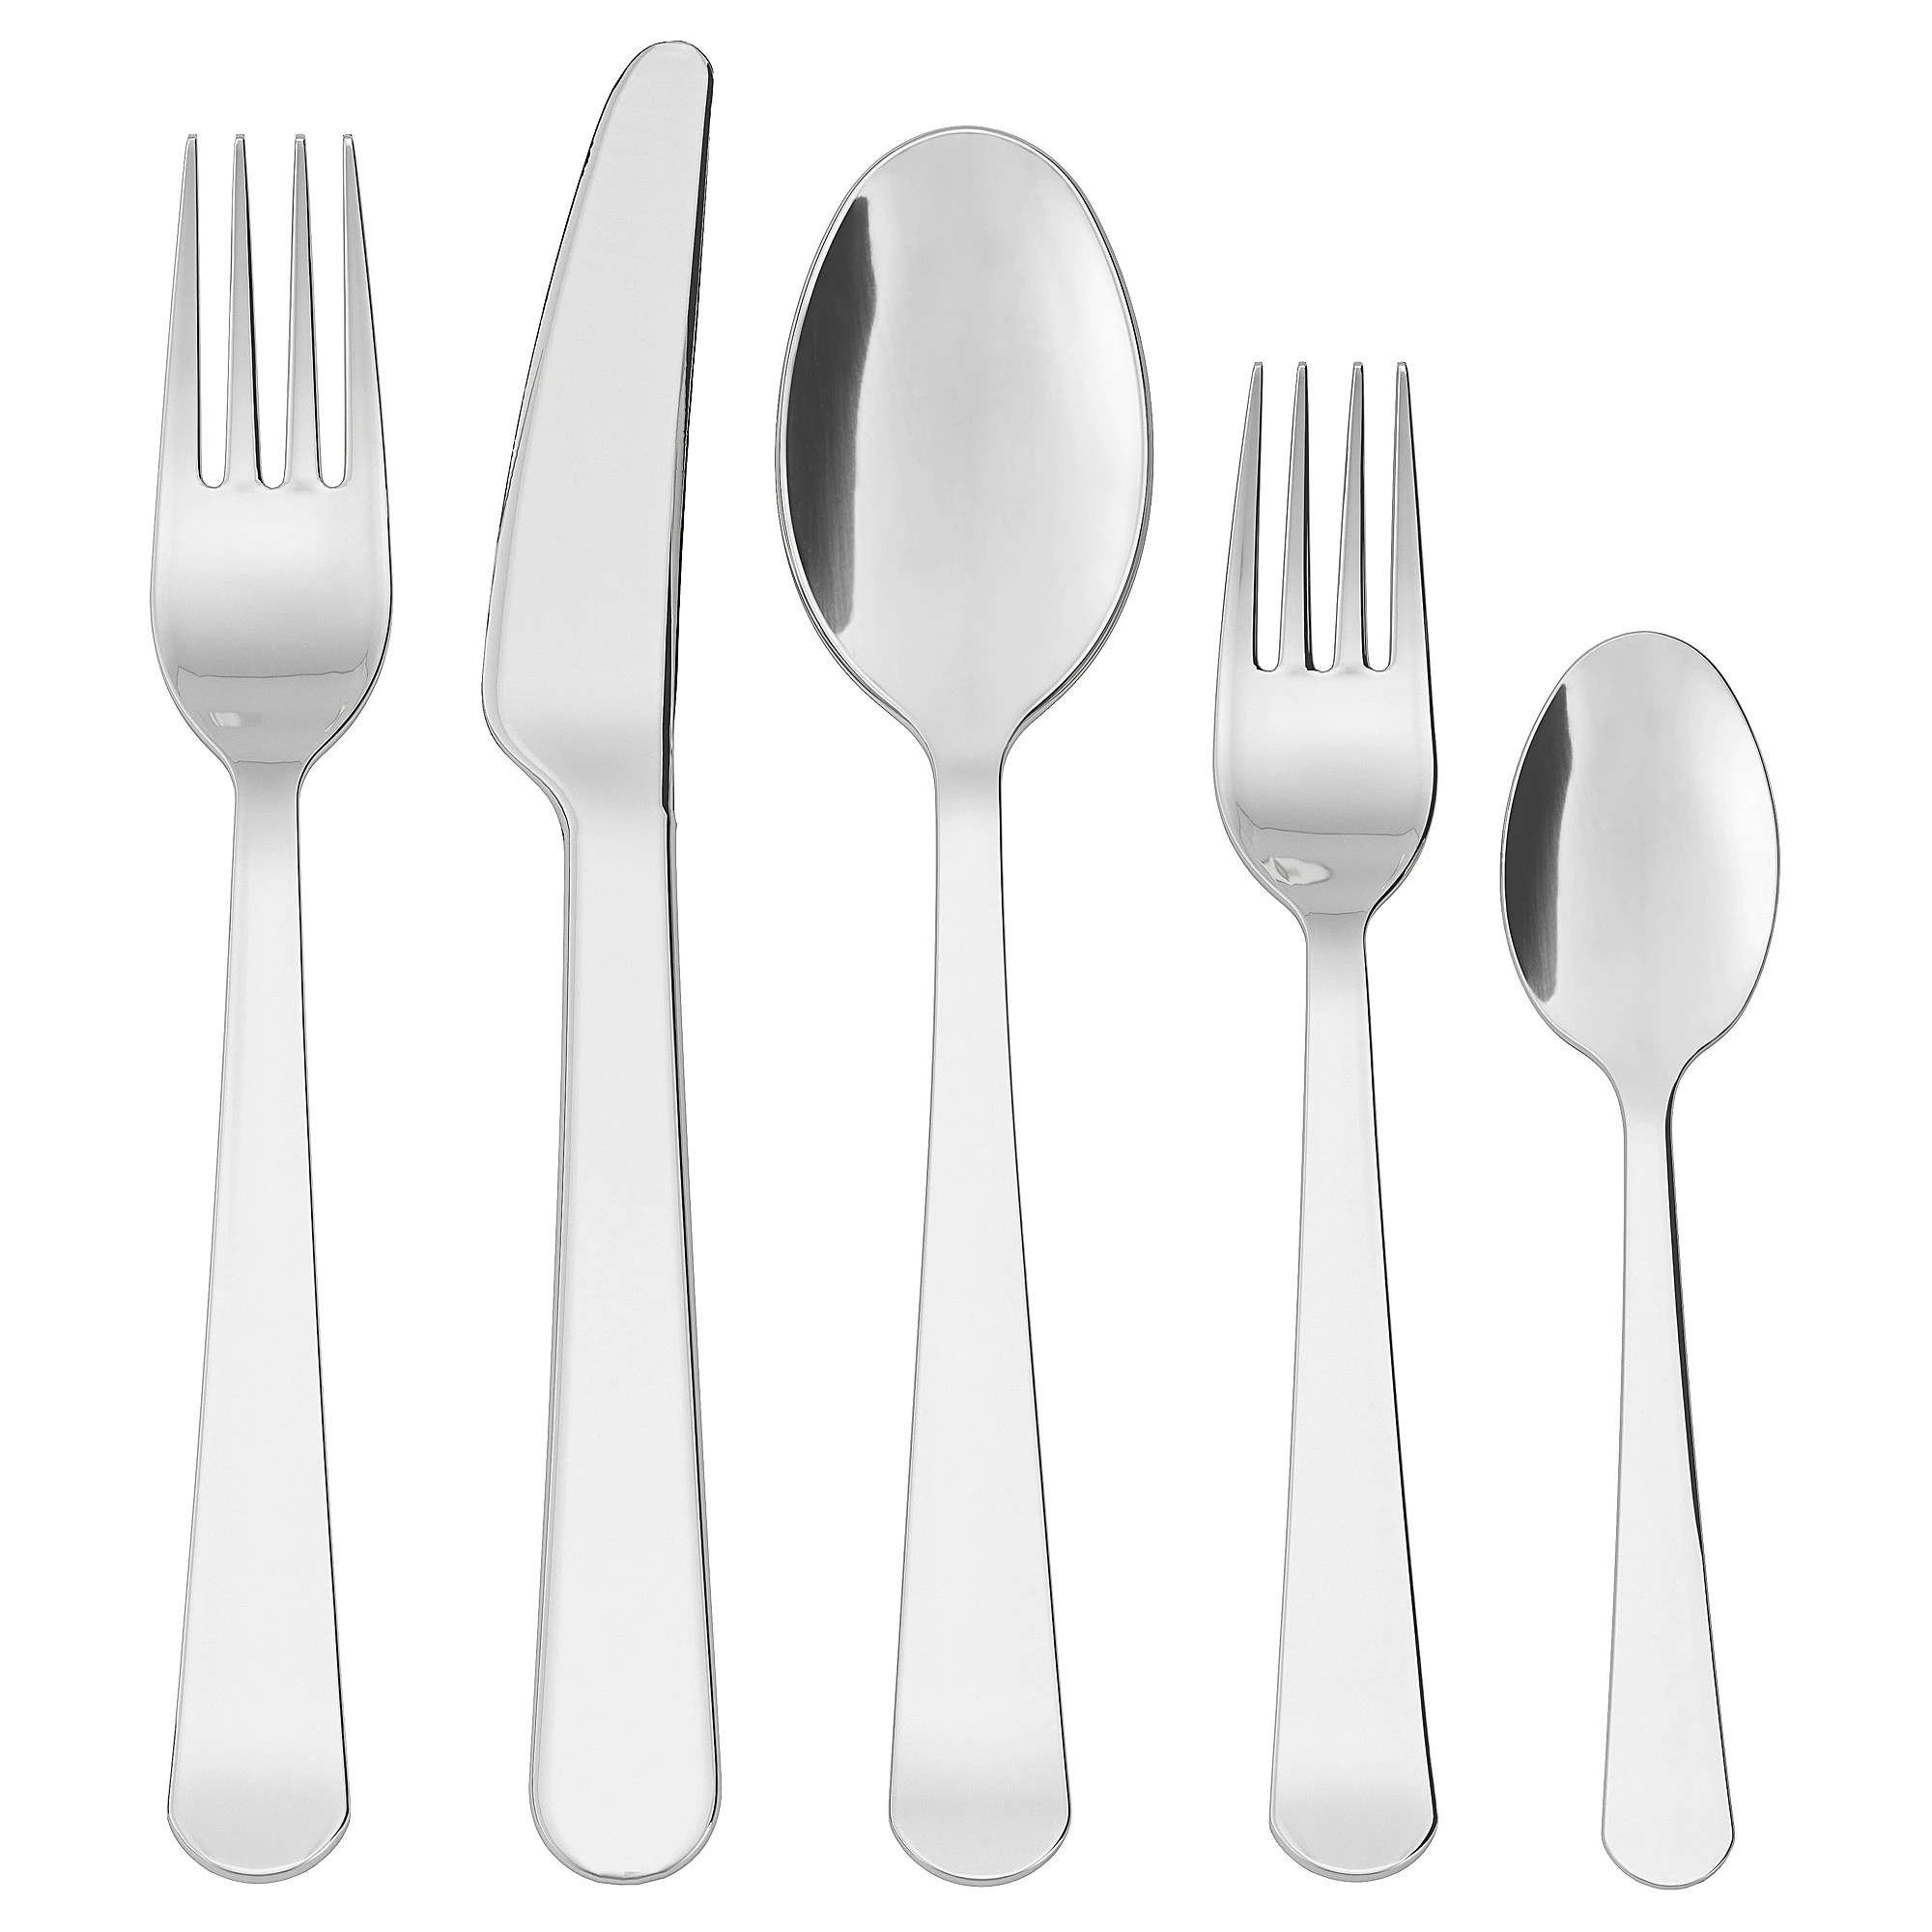 Discount Stainless Flatware Dragon 20 Piece Flatware Set Stainless Steel